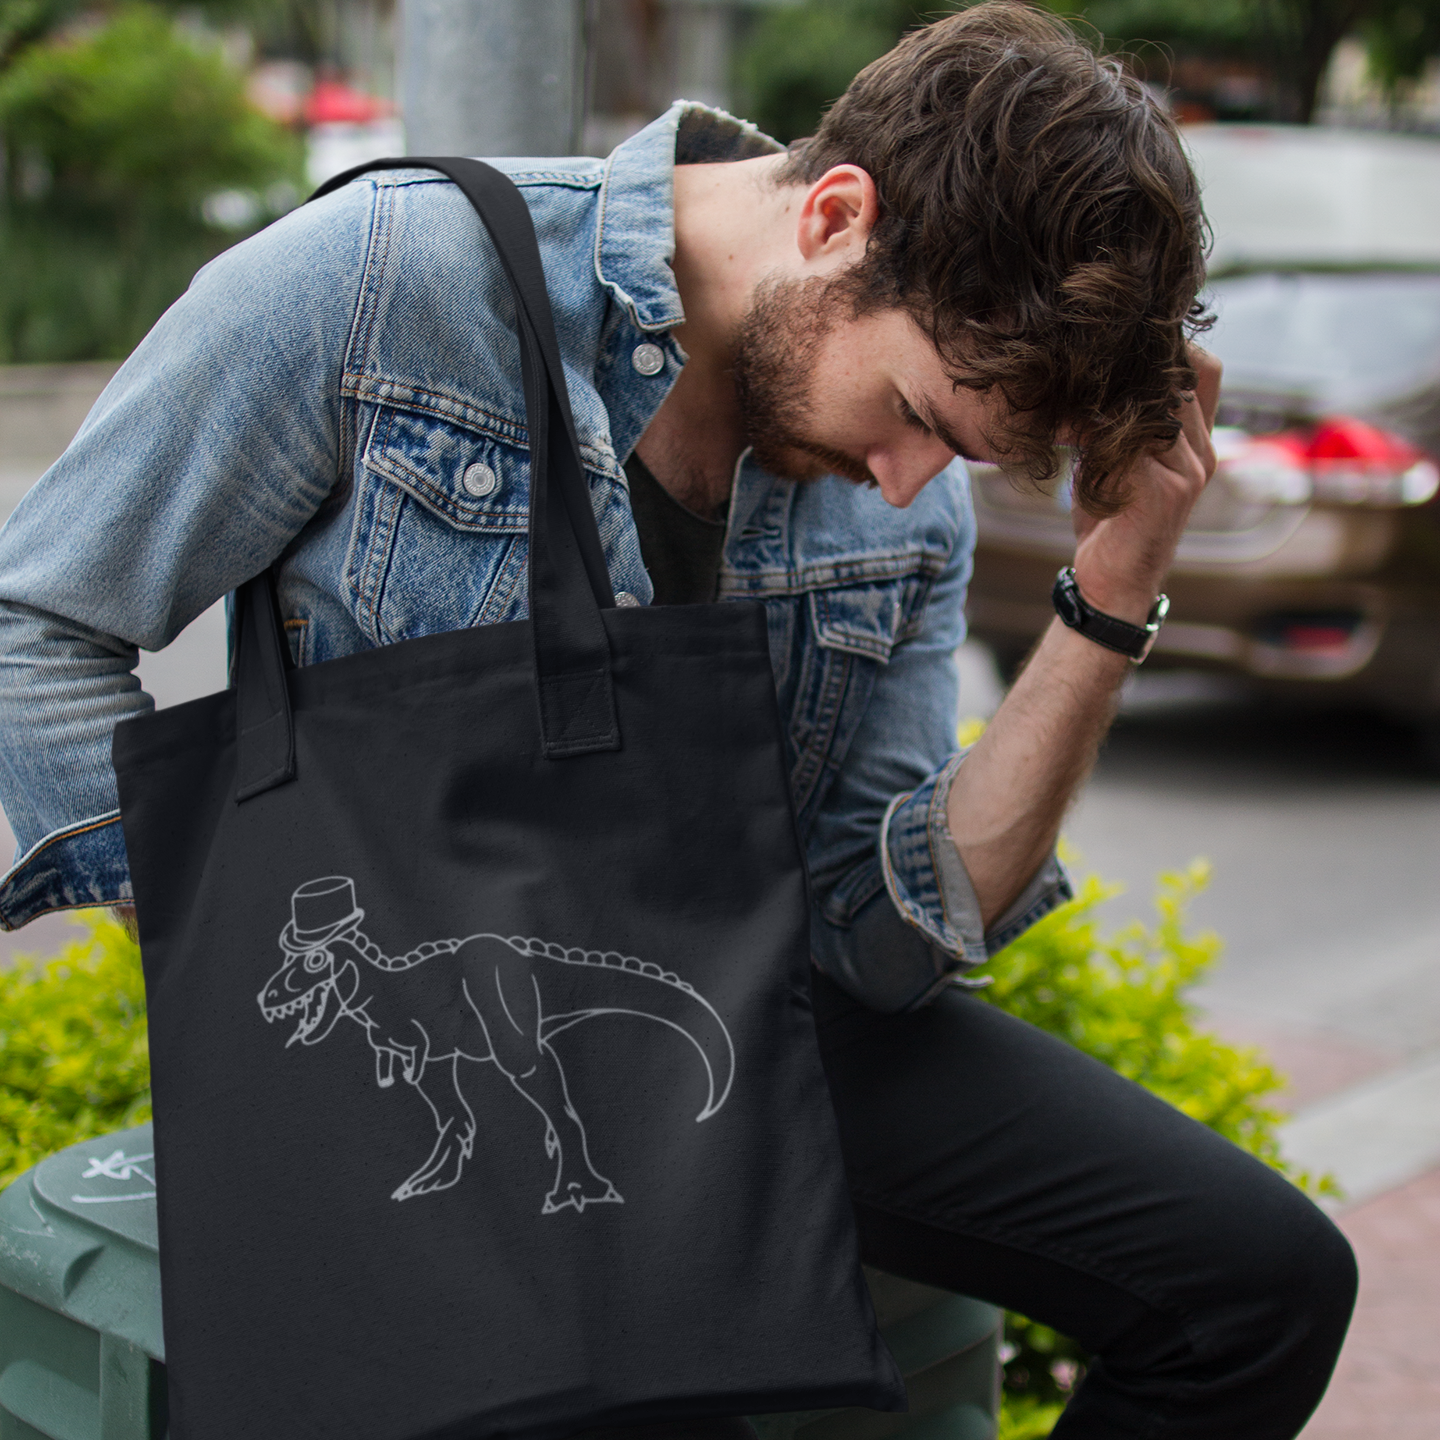 Dino with tophat tote bag